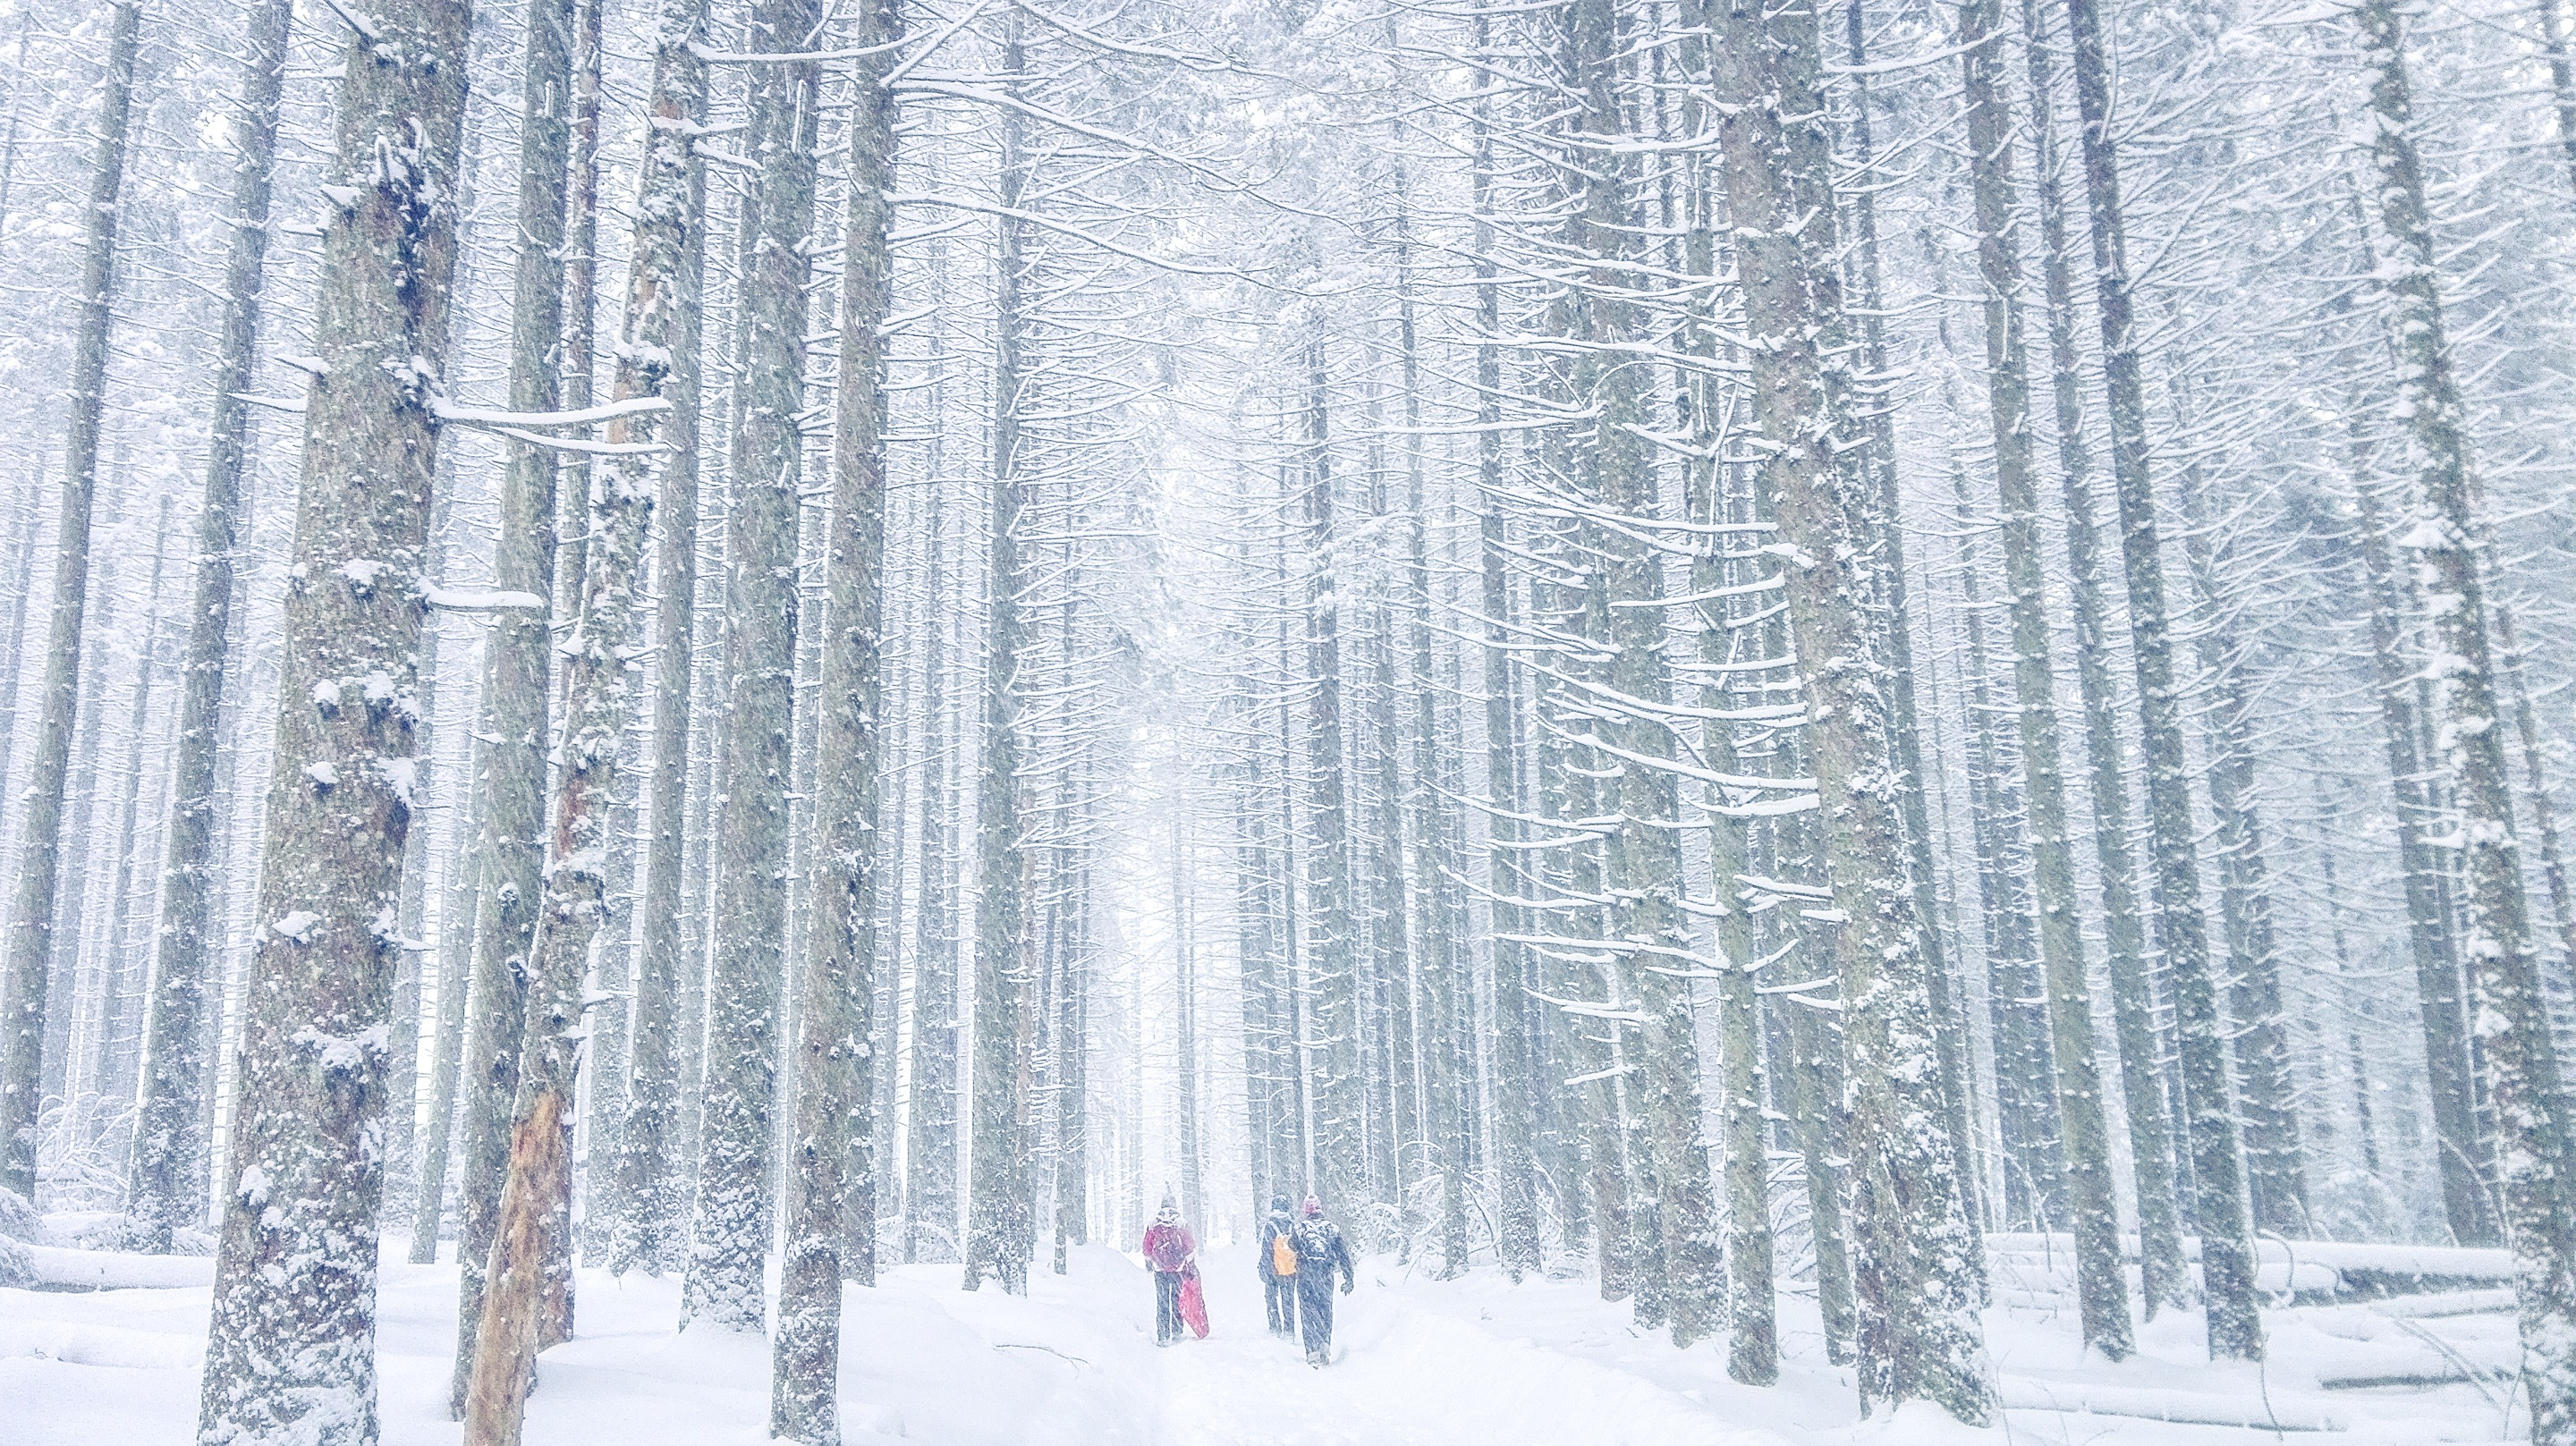 Walking through forbidden forest. Photo by Alis Monte [CC BY-SA 4.0], via Connecting the Dots